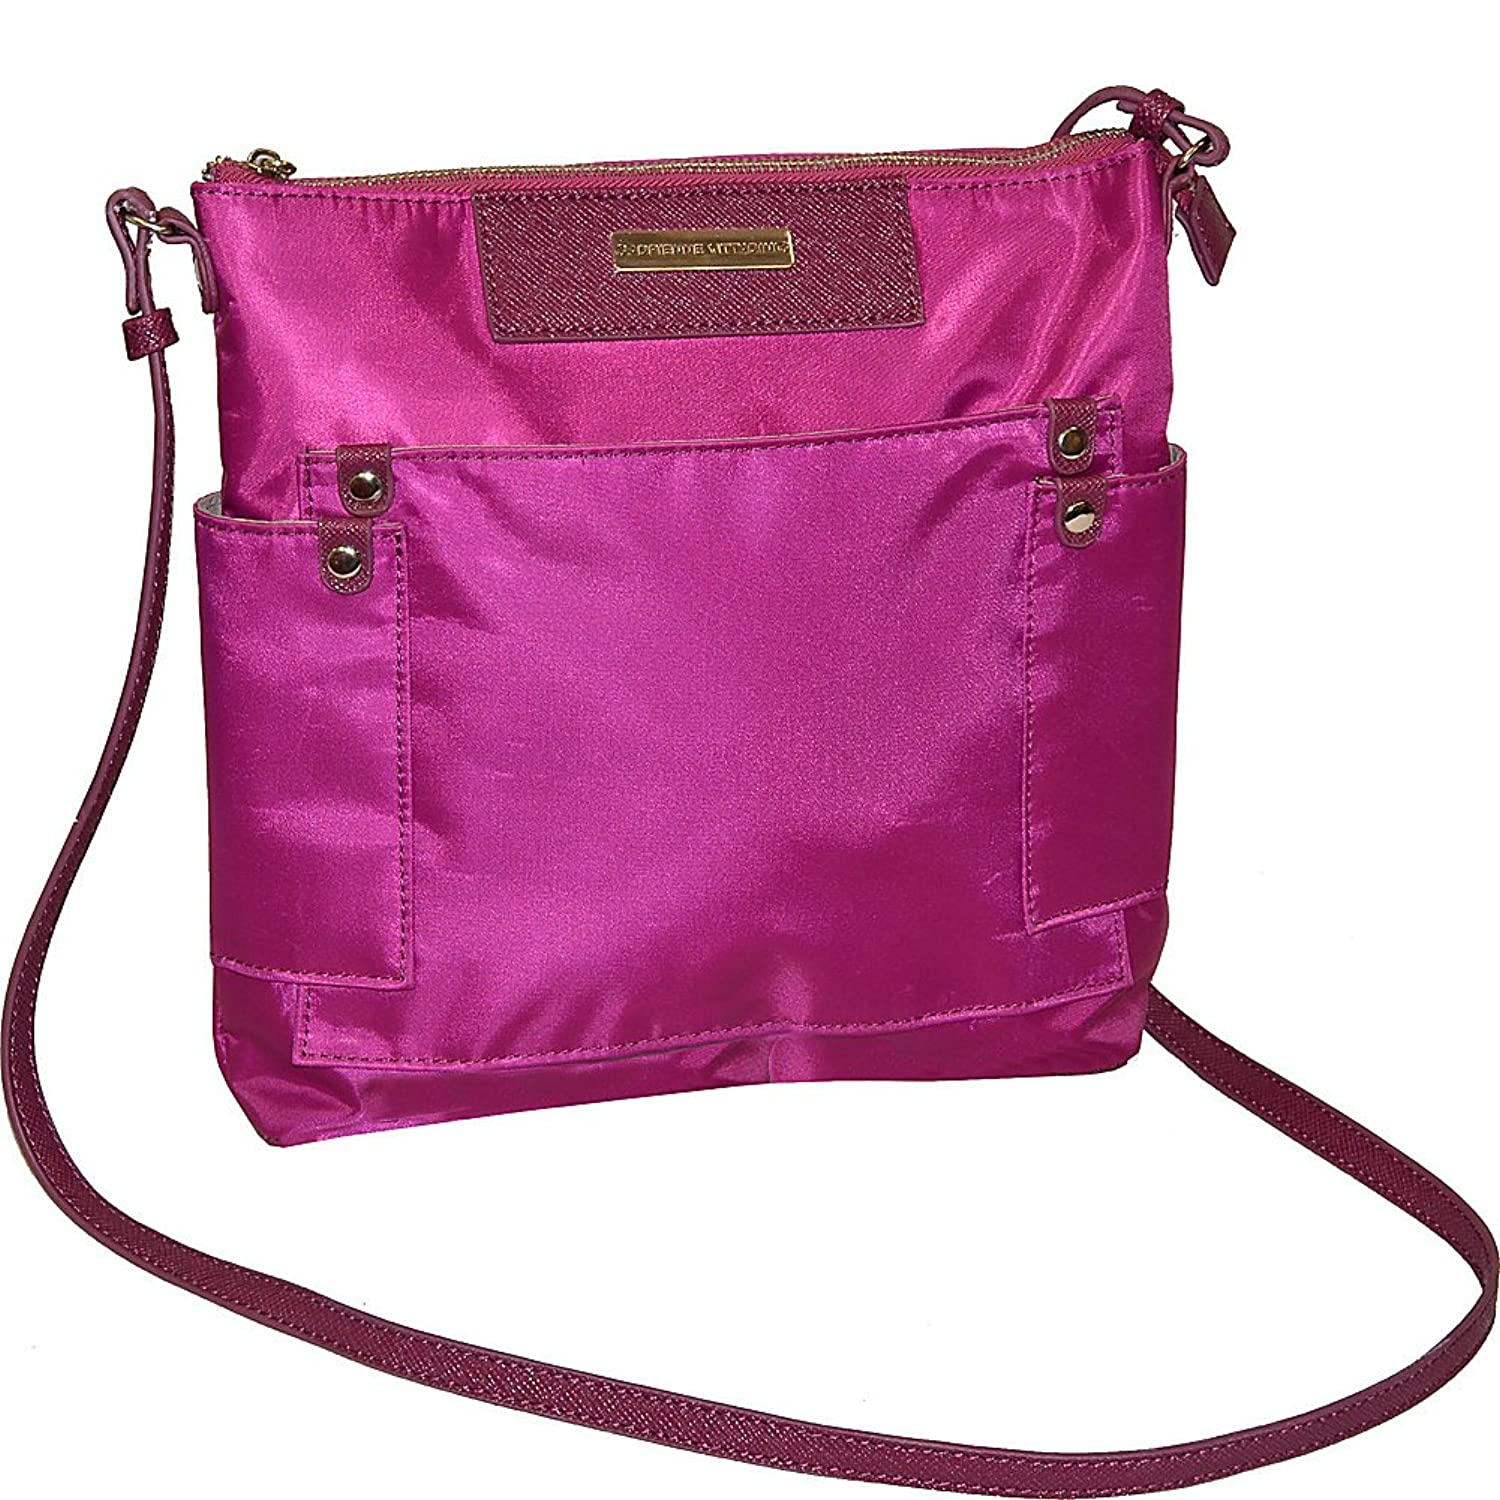 Adrienne Vittadini Travel Light Passport Crossbody Bag